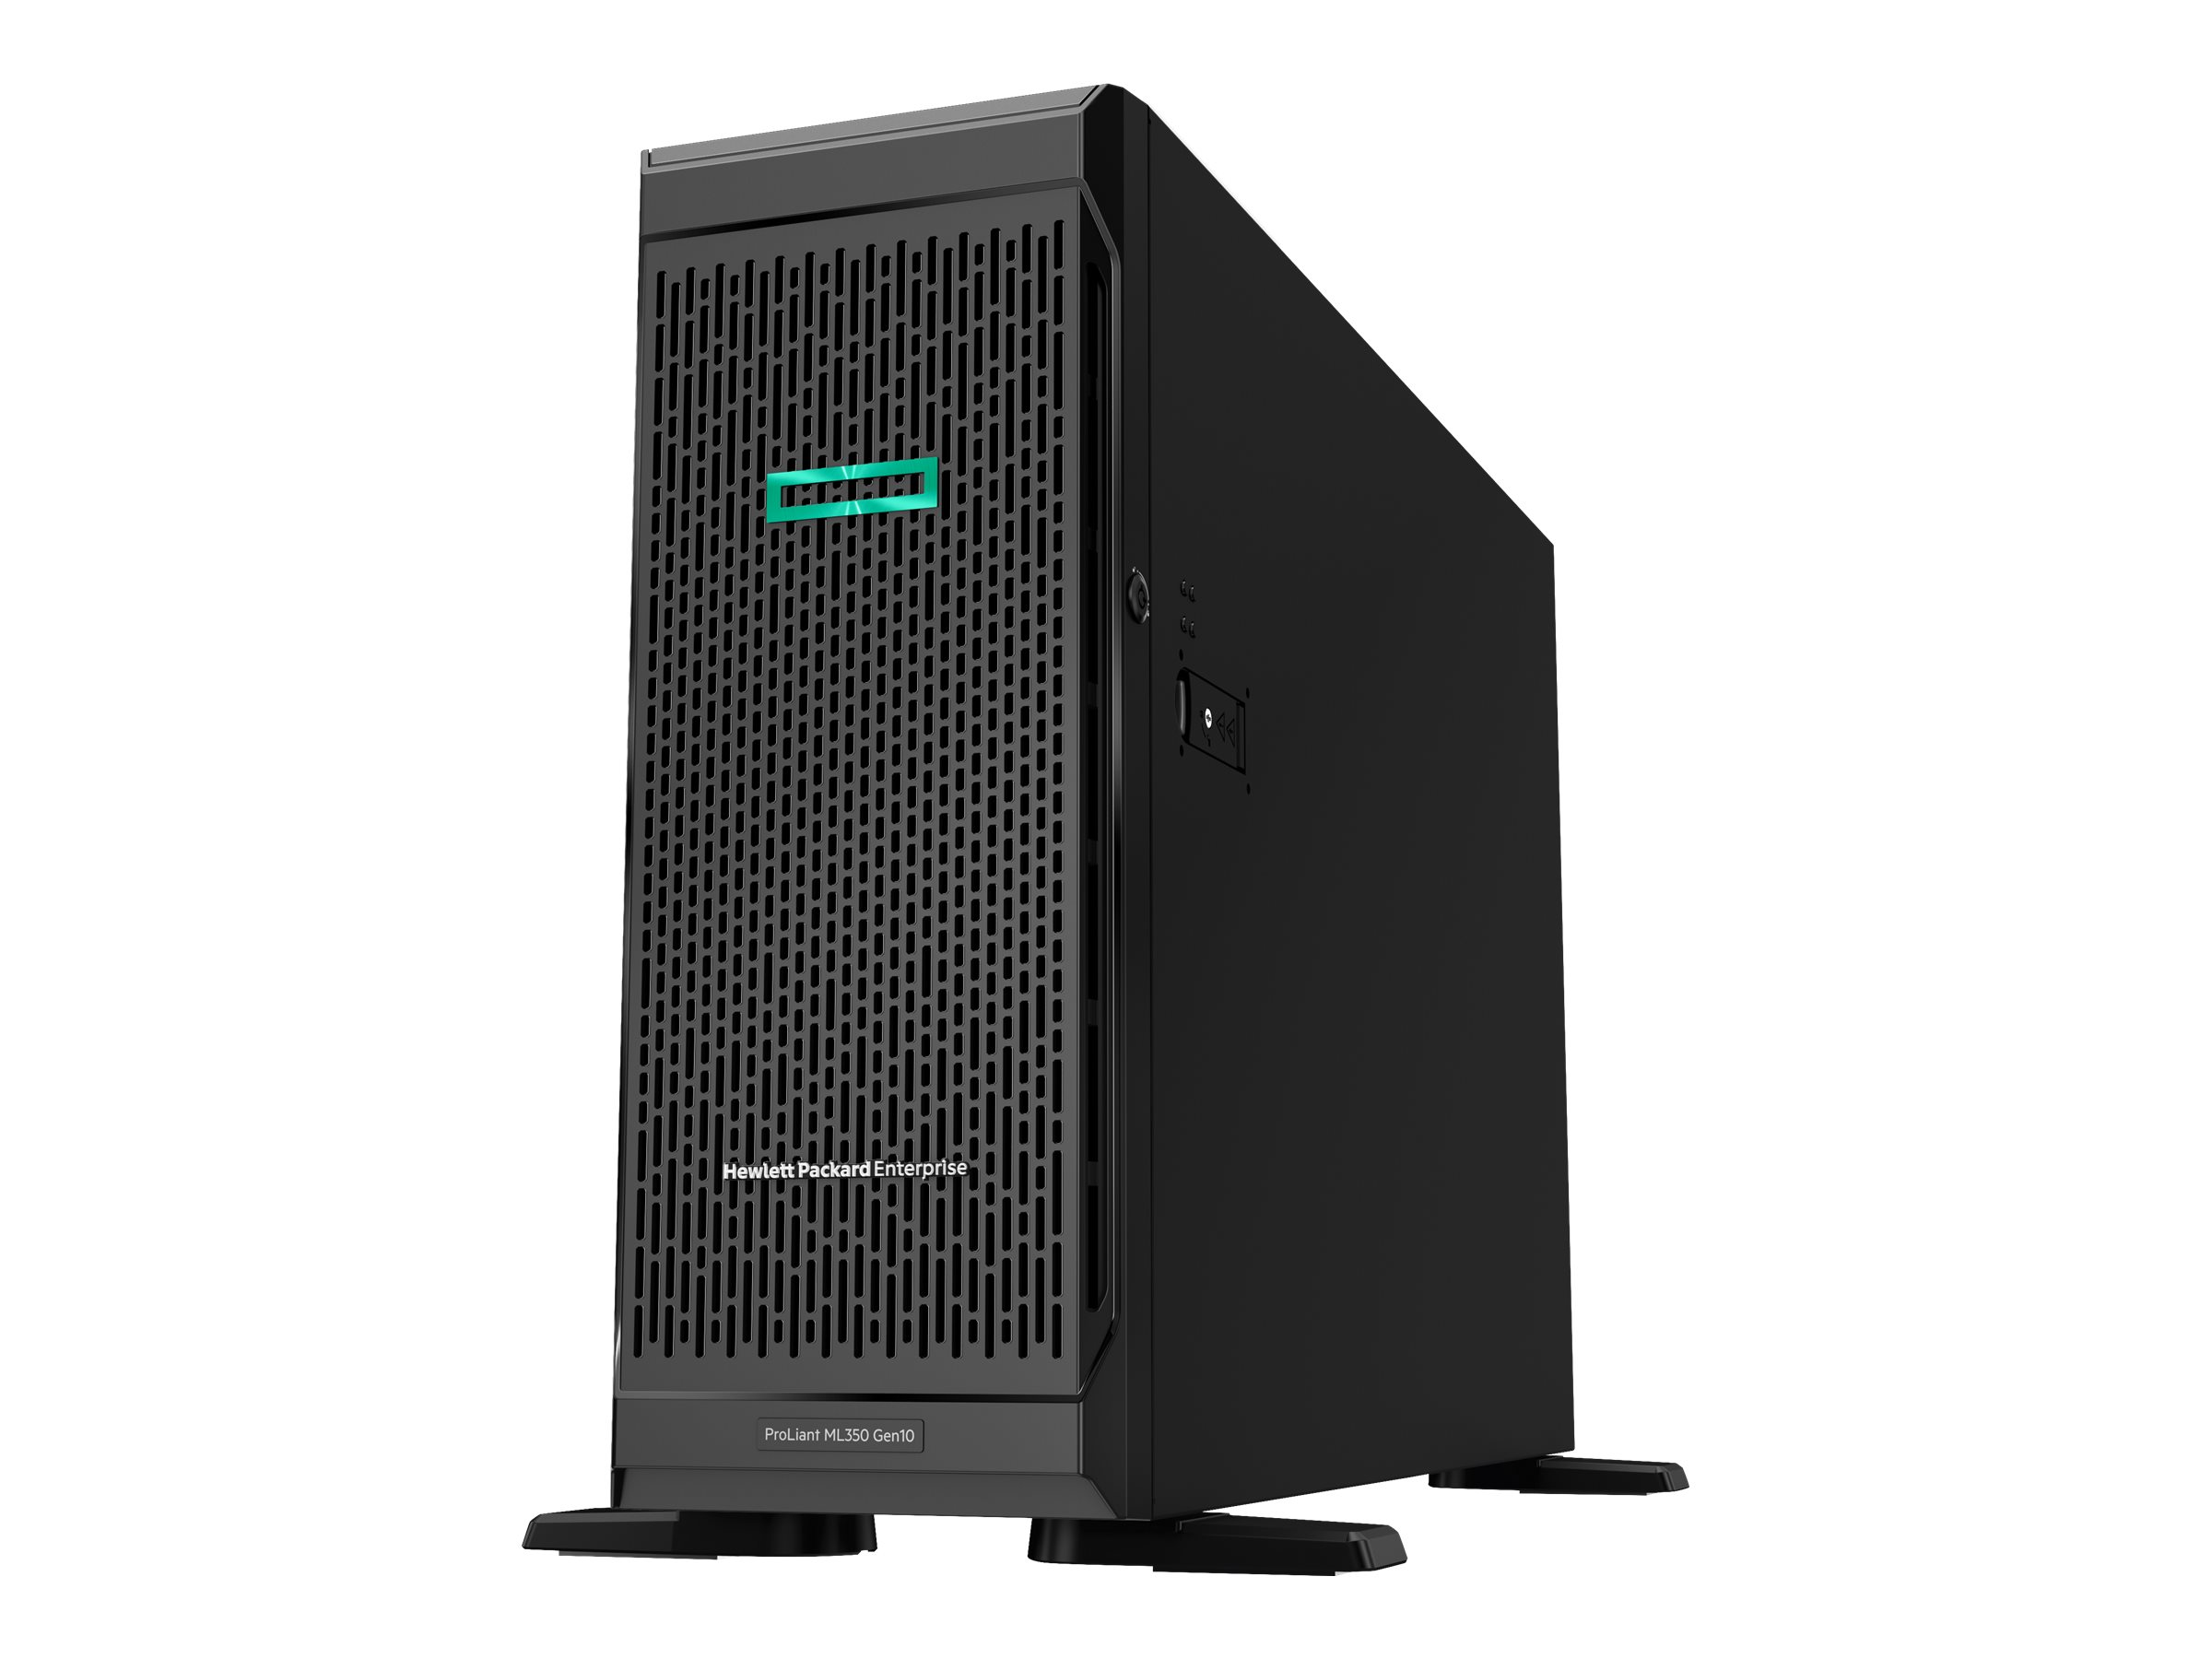 HPE ProLiant ML350 Gen10 Sub-Entry - Server - Tower - 4U - zweiweg - 1 x Xeon Bronze 3104 / 1.7 GHz